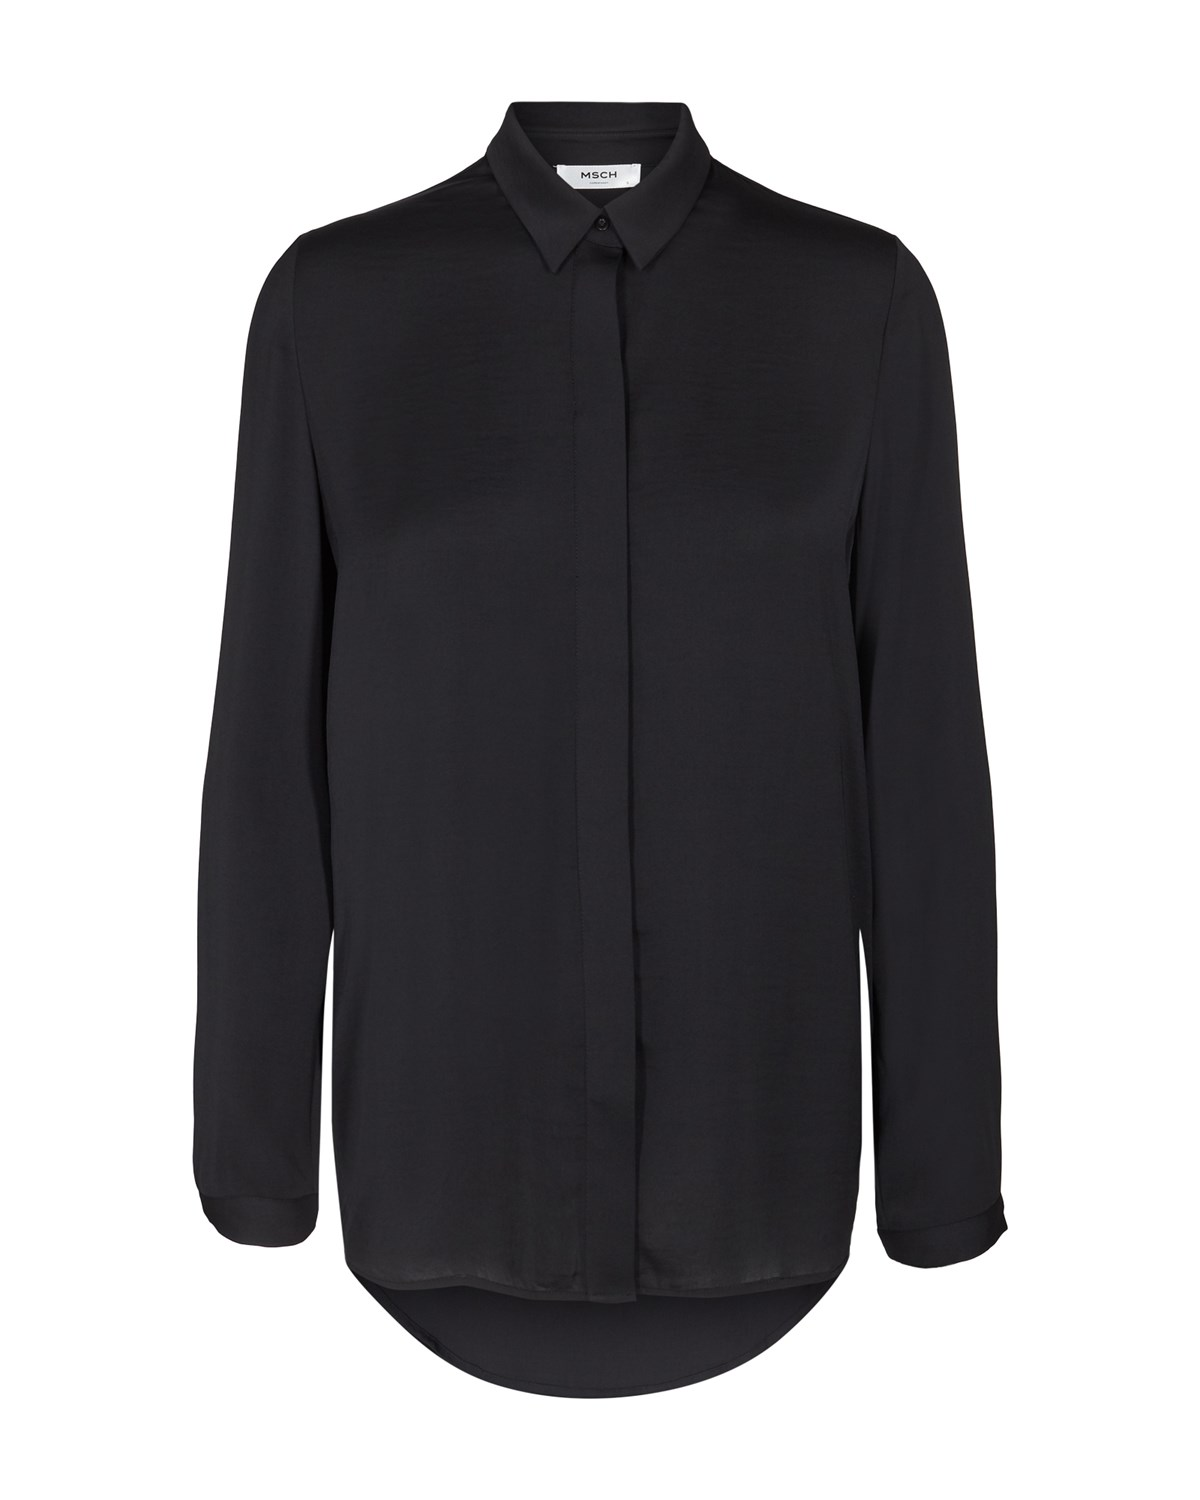 BLAIR BLOUSE BLACK - MOSS COPENHAGEN